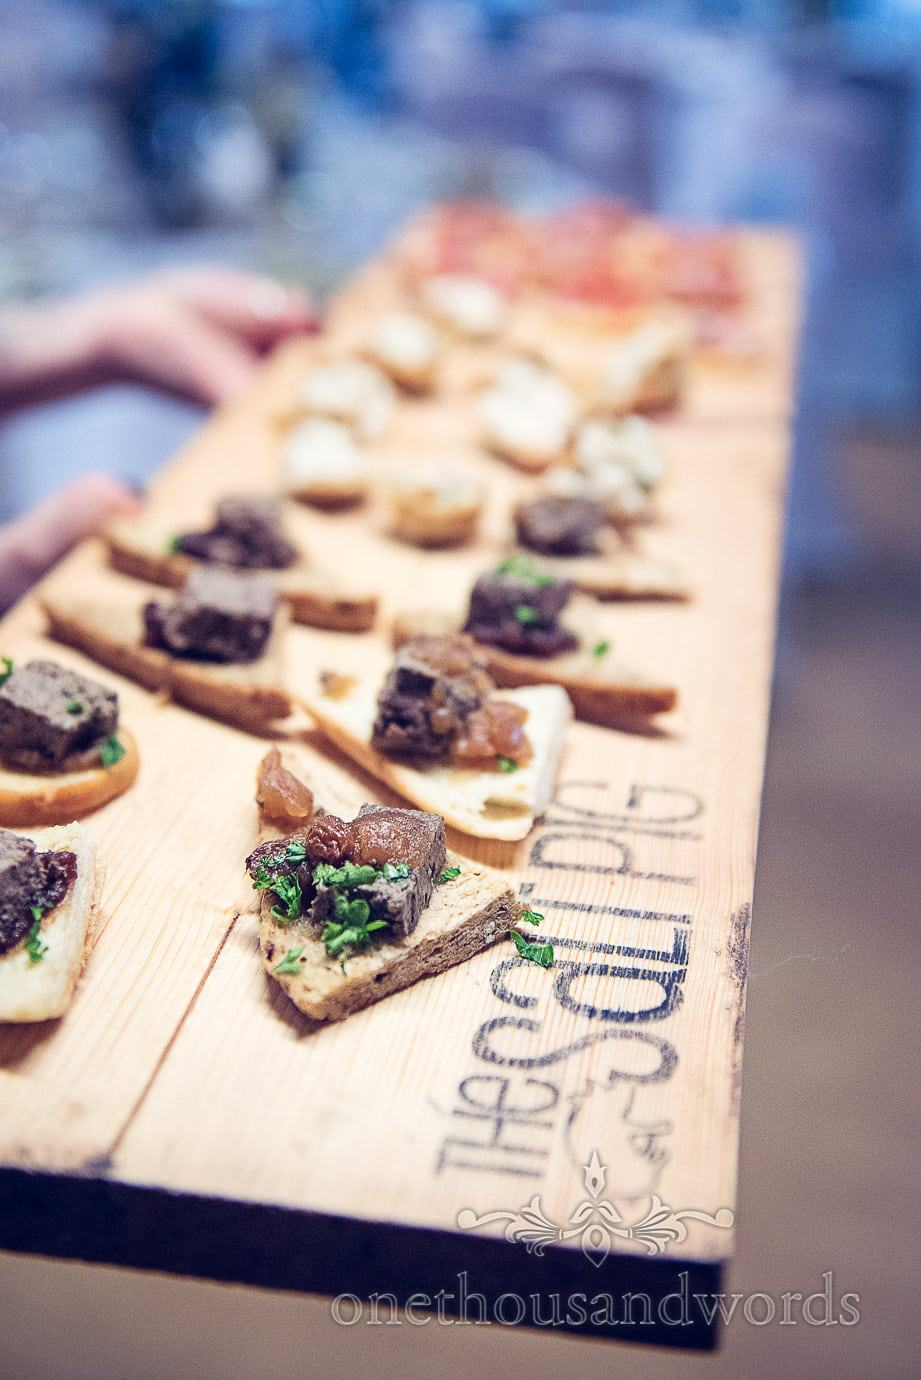 The Salt Pig, Wareham Dorset Wedding Canapés on wooden board